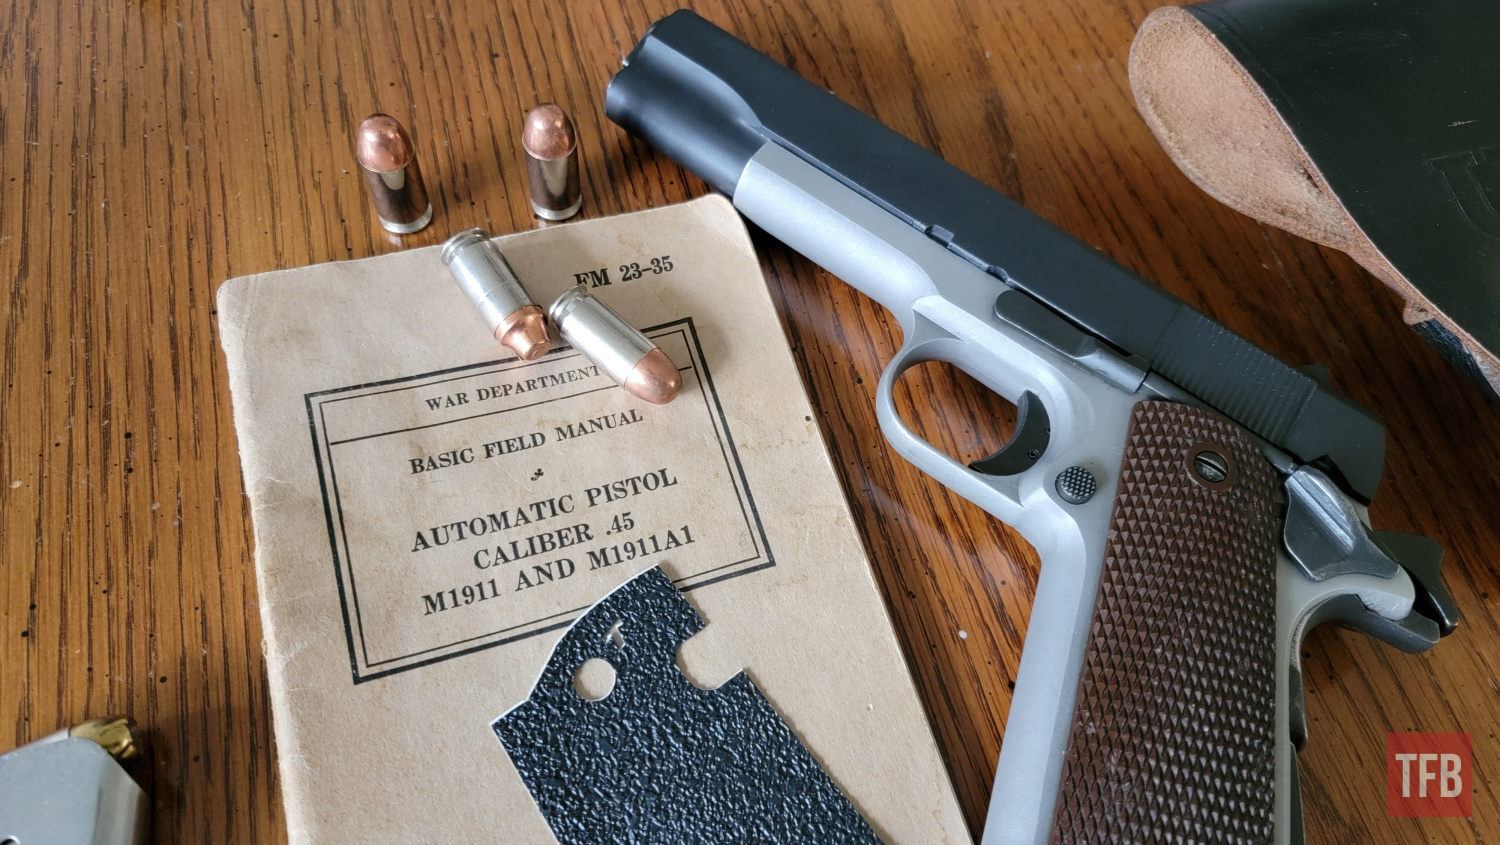 TFB Review: Installing and Shooting the New Talon Modular 1911 Grips